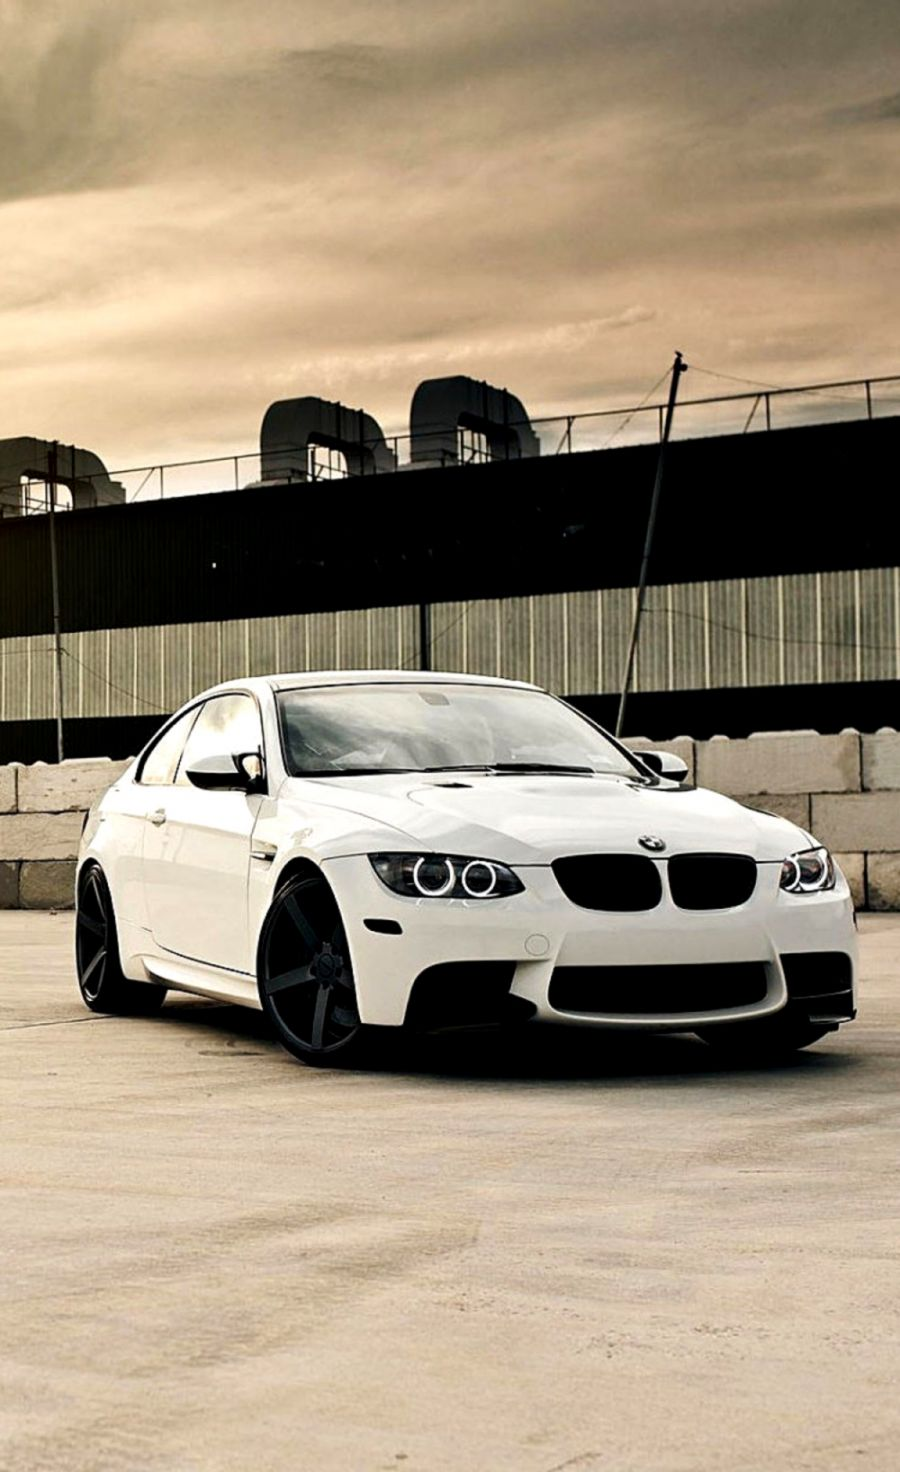 Bmw handy wallpaper hd